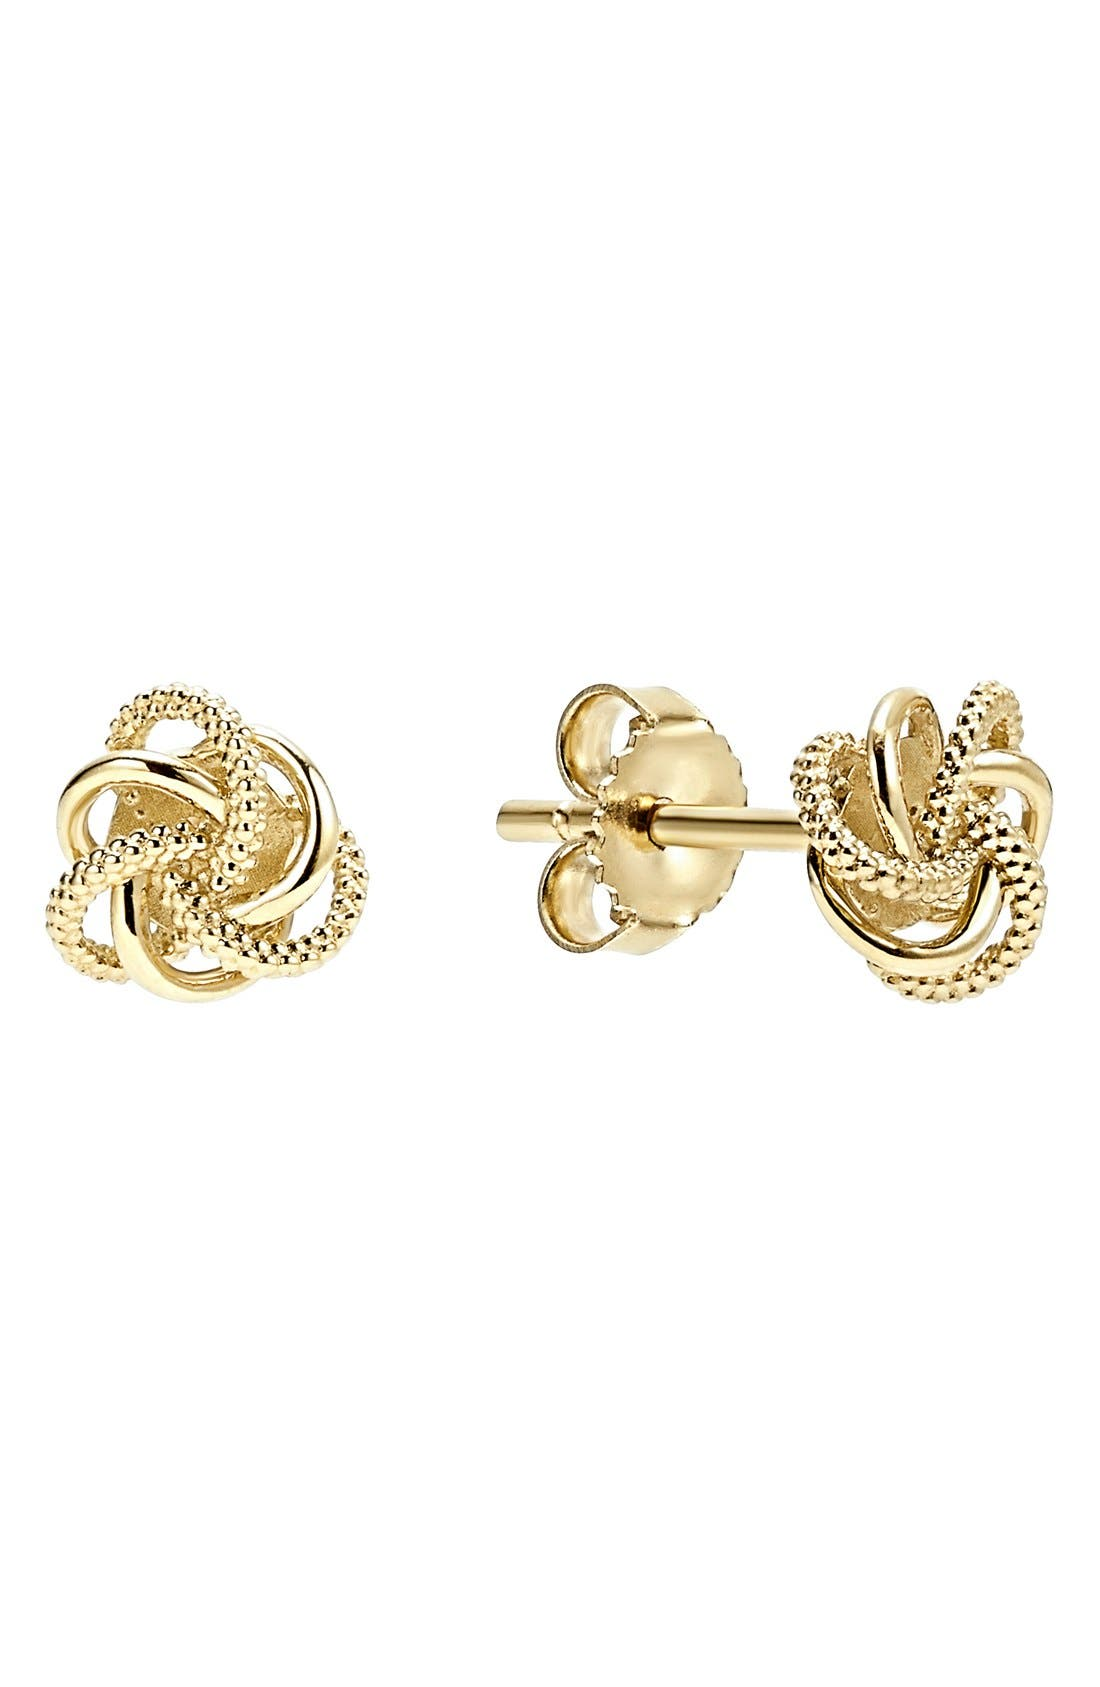 'Love Knot' Stud Earrings,                             Main thumbnail 1, color,                             Gold